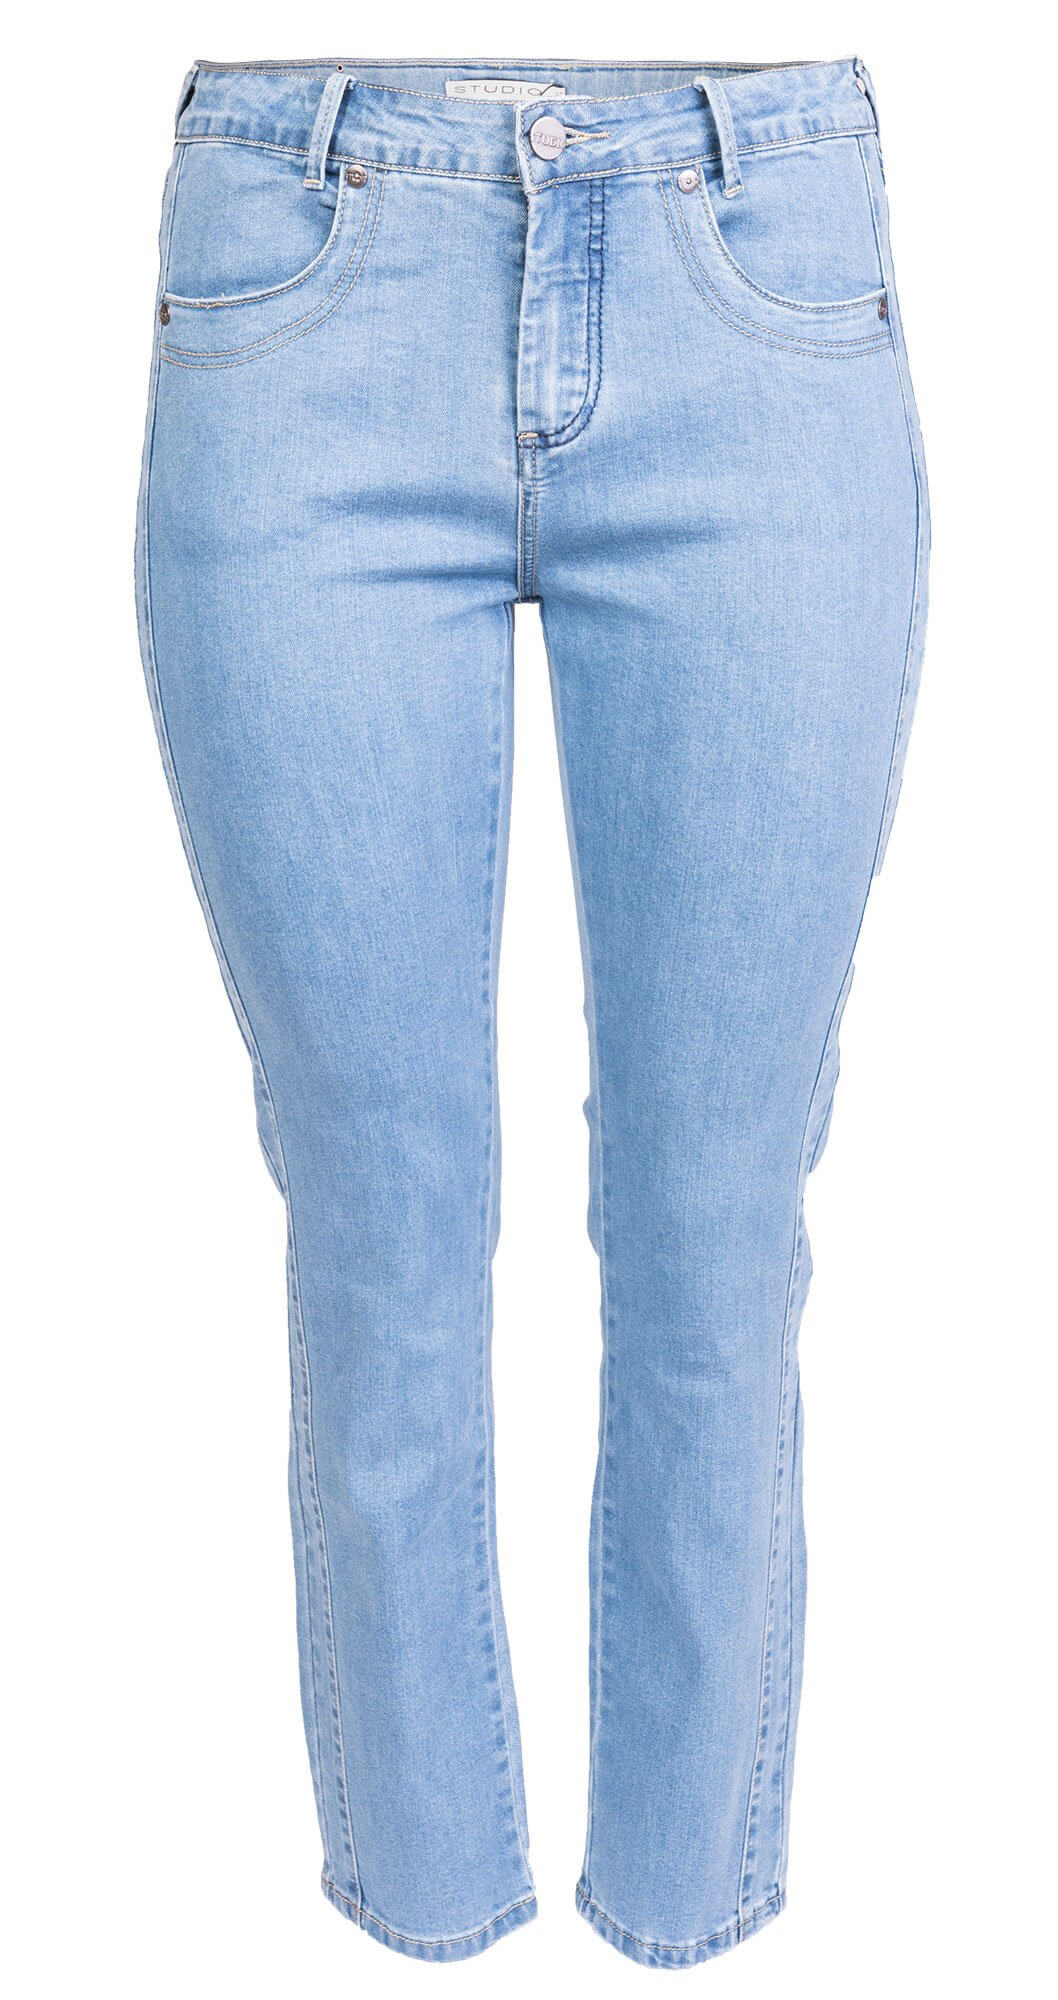 Fit 55 jeans i lyseblå denim med stretch